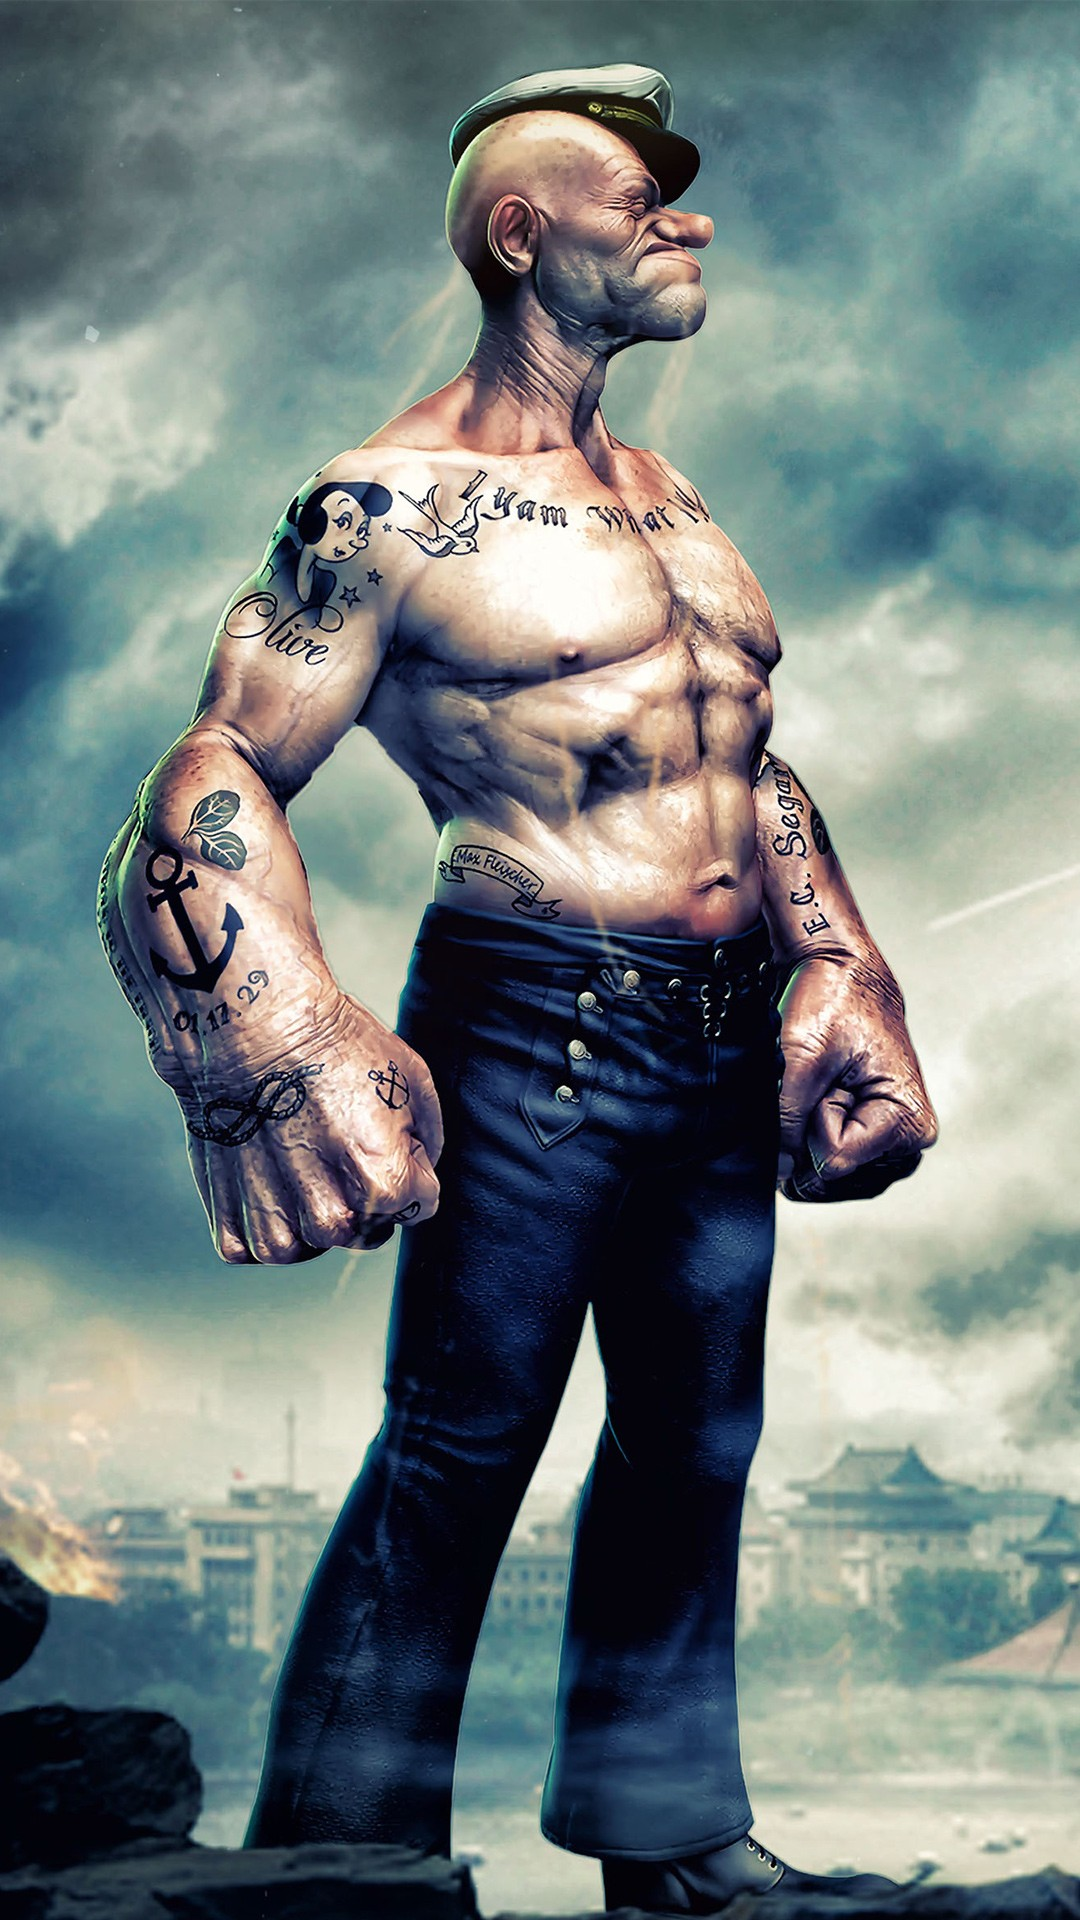 Tattoo Wallpaper 3d Popeye Artwork 4k Wallpapers Hd Wallpapers Id 21229